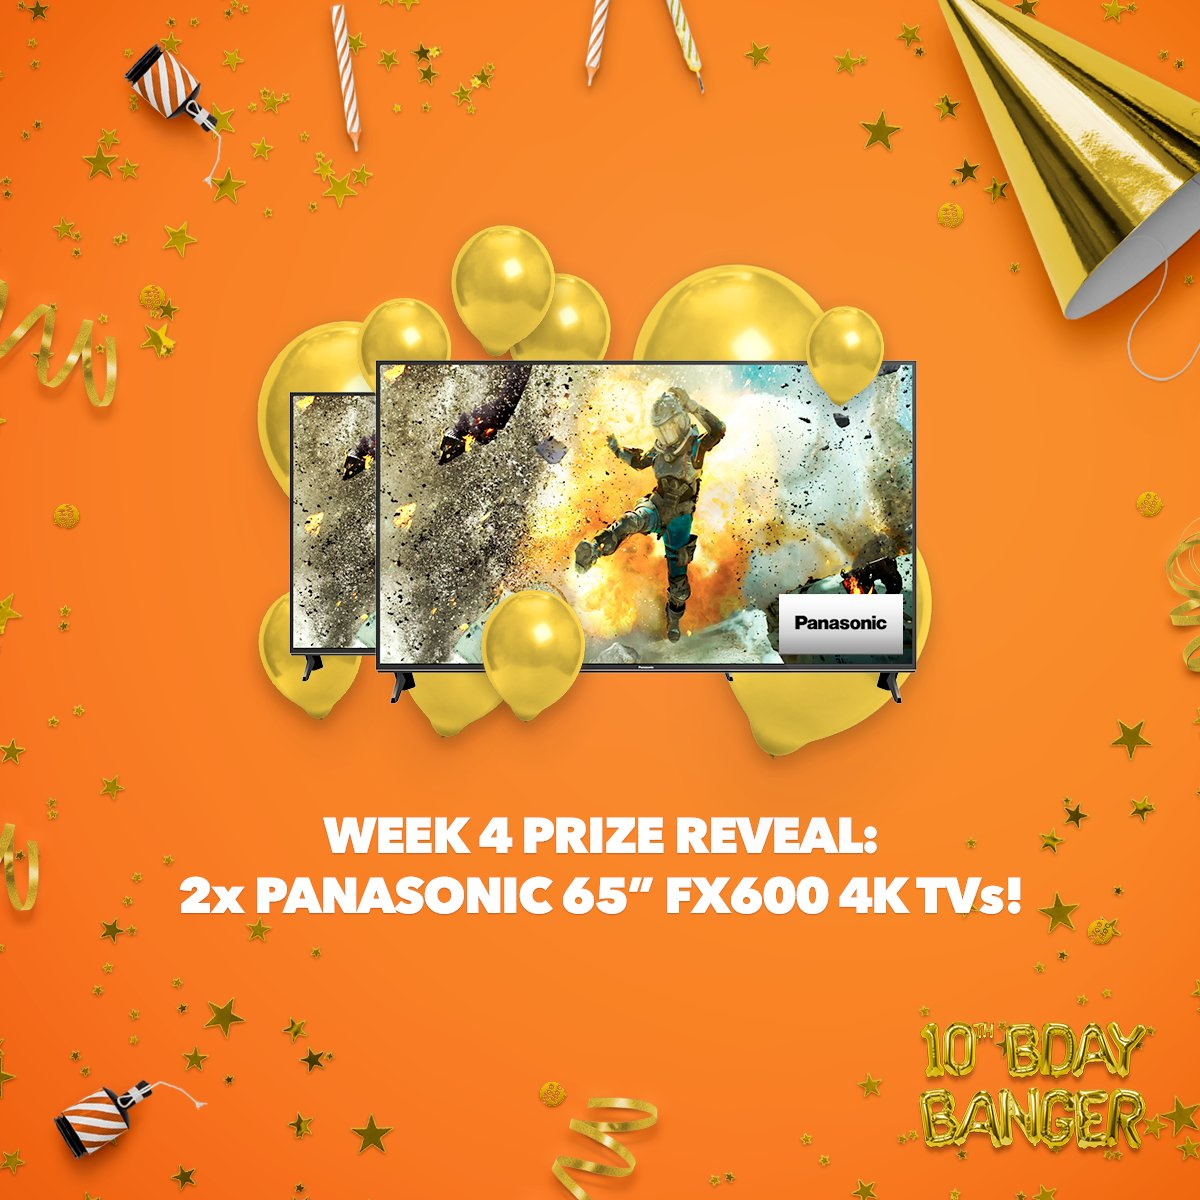 "Wanna spend your evenings in front of Ultra HD Netflix? Make sure you've  applied for your 2018 tax refund by this weekend for your chance to win  Panasonic's awesome new 65"" FX600 4K TV worth $3399 in our final WooHoo #birthdaybanger! http://www.woohoo.co.nz/birthday   T&Cs apply."